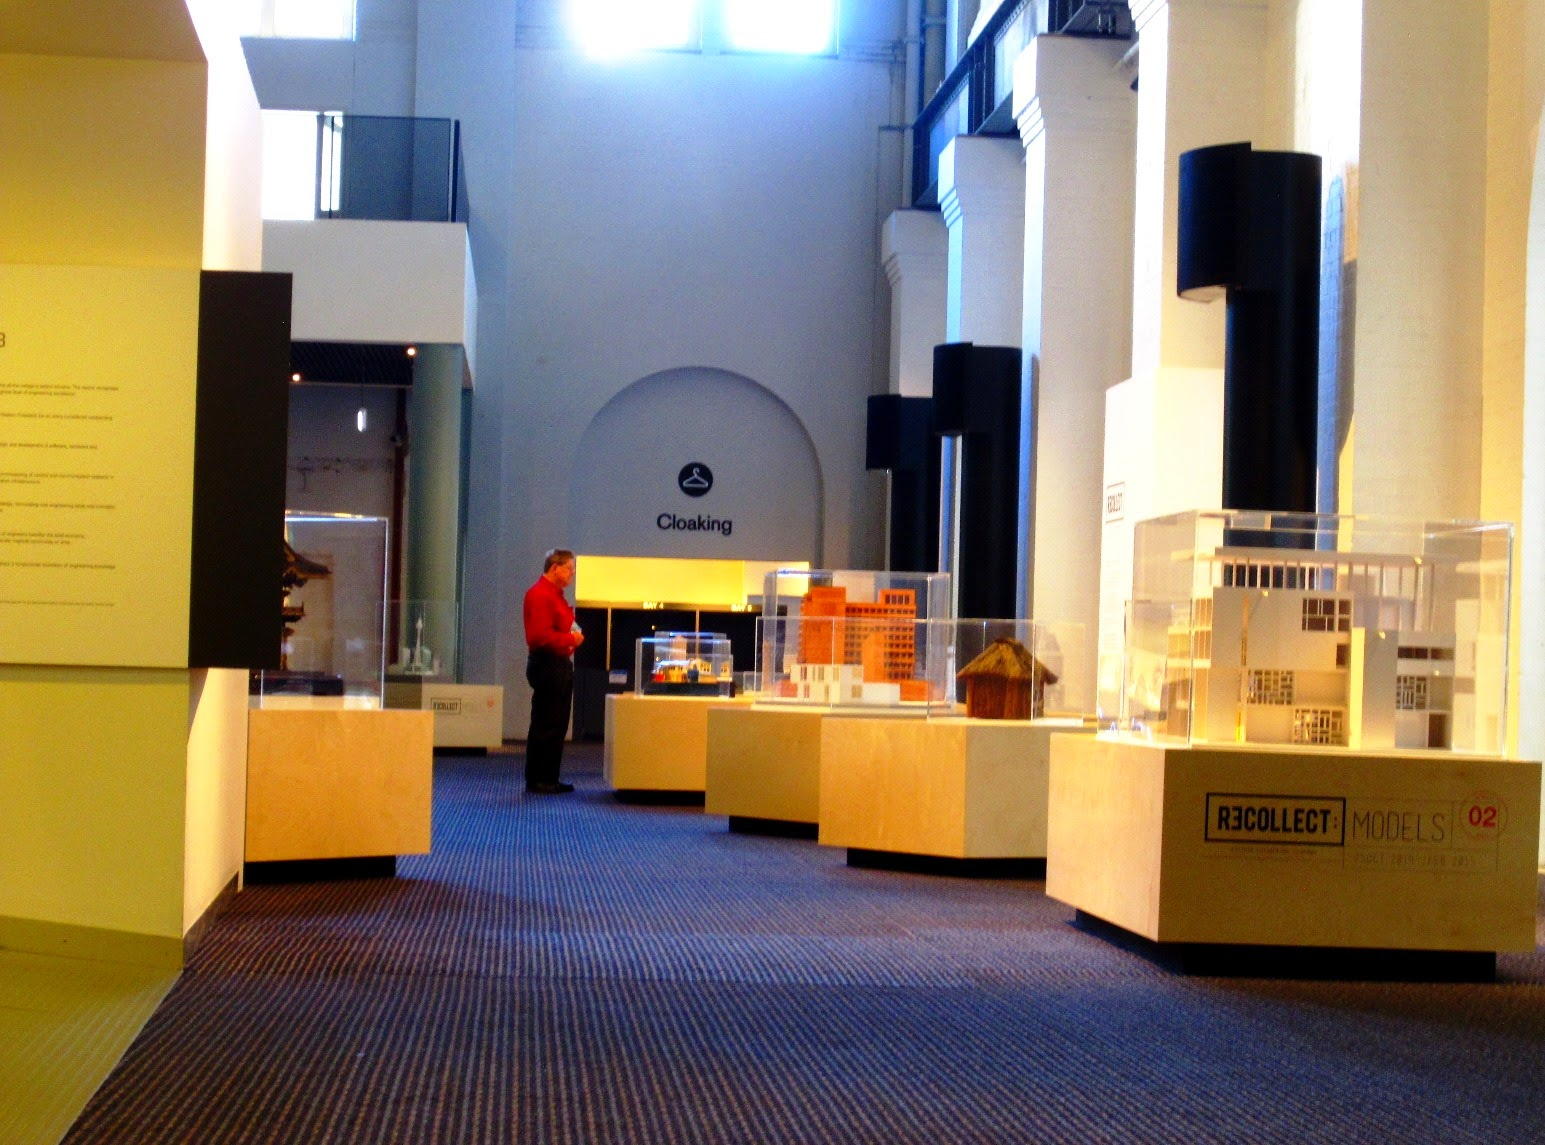 View of the exhibition Recollect 2: Models at the Powerhouse Museum.